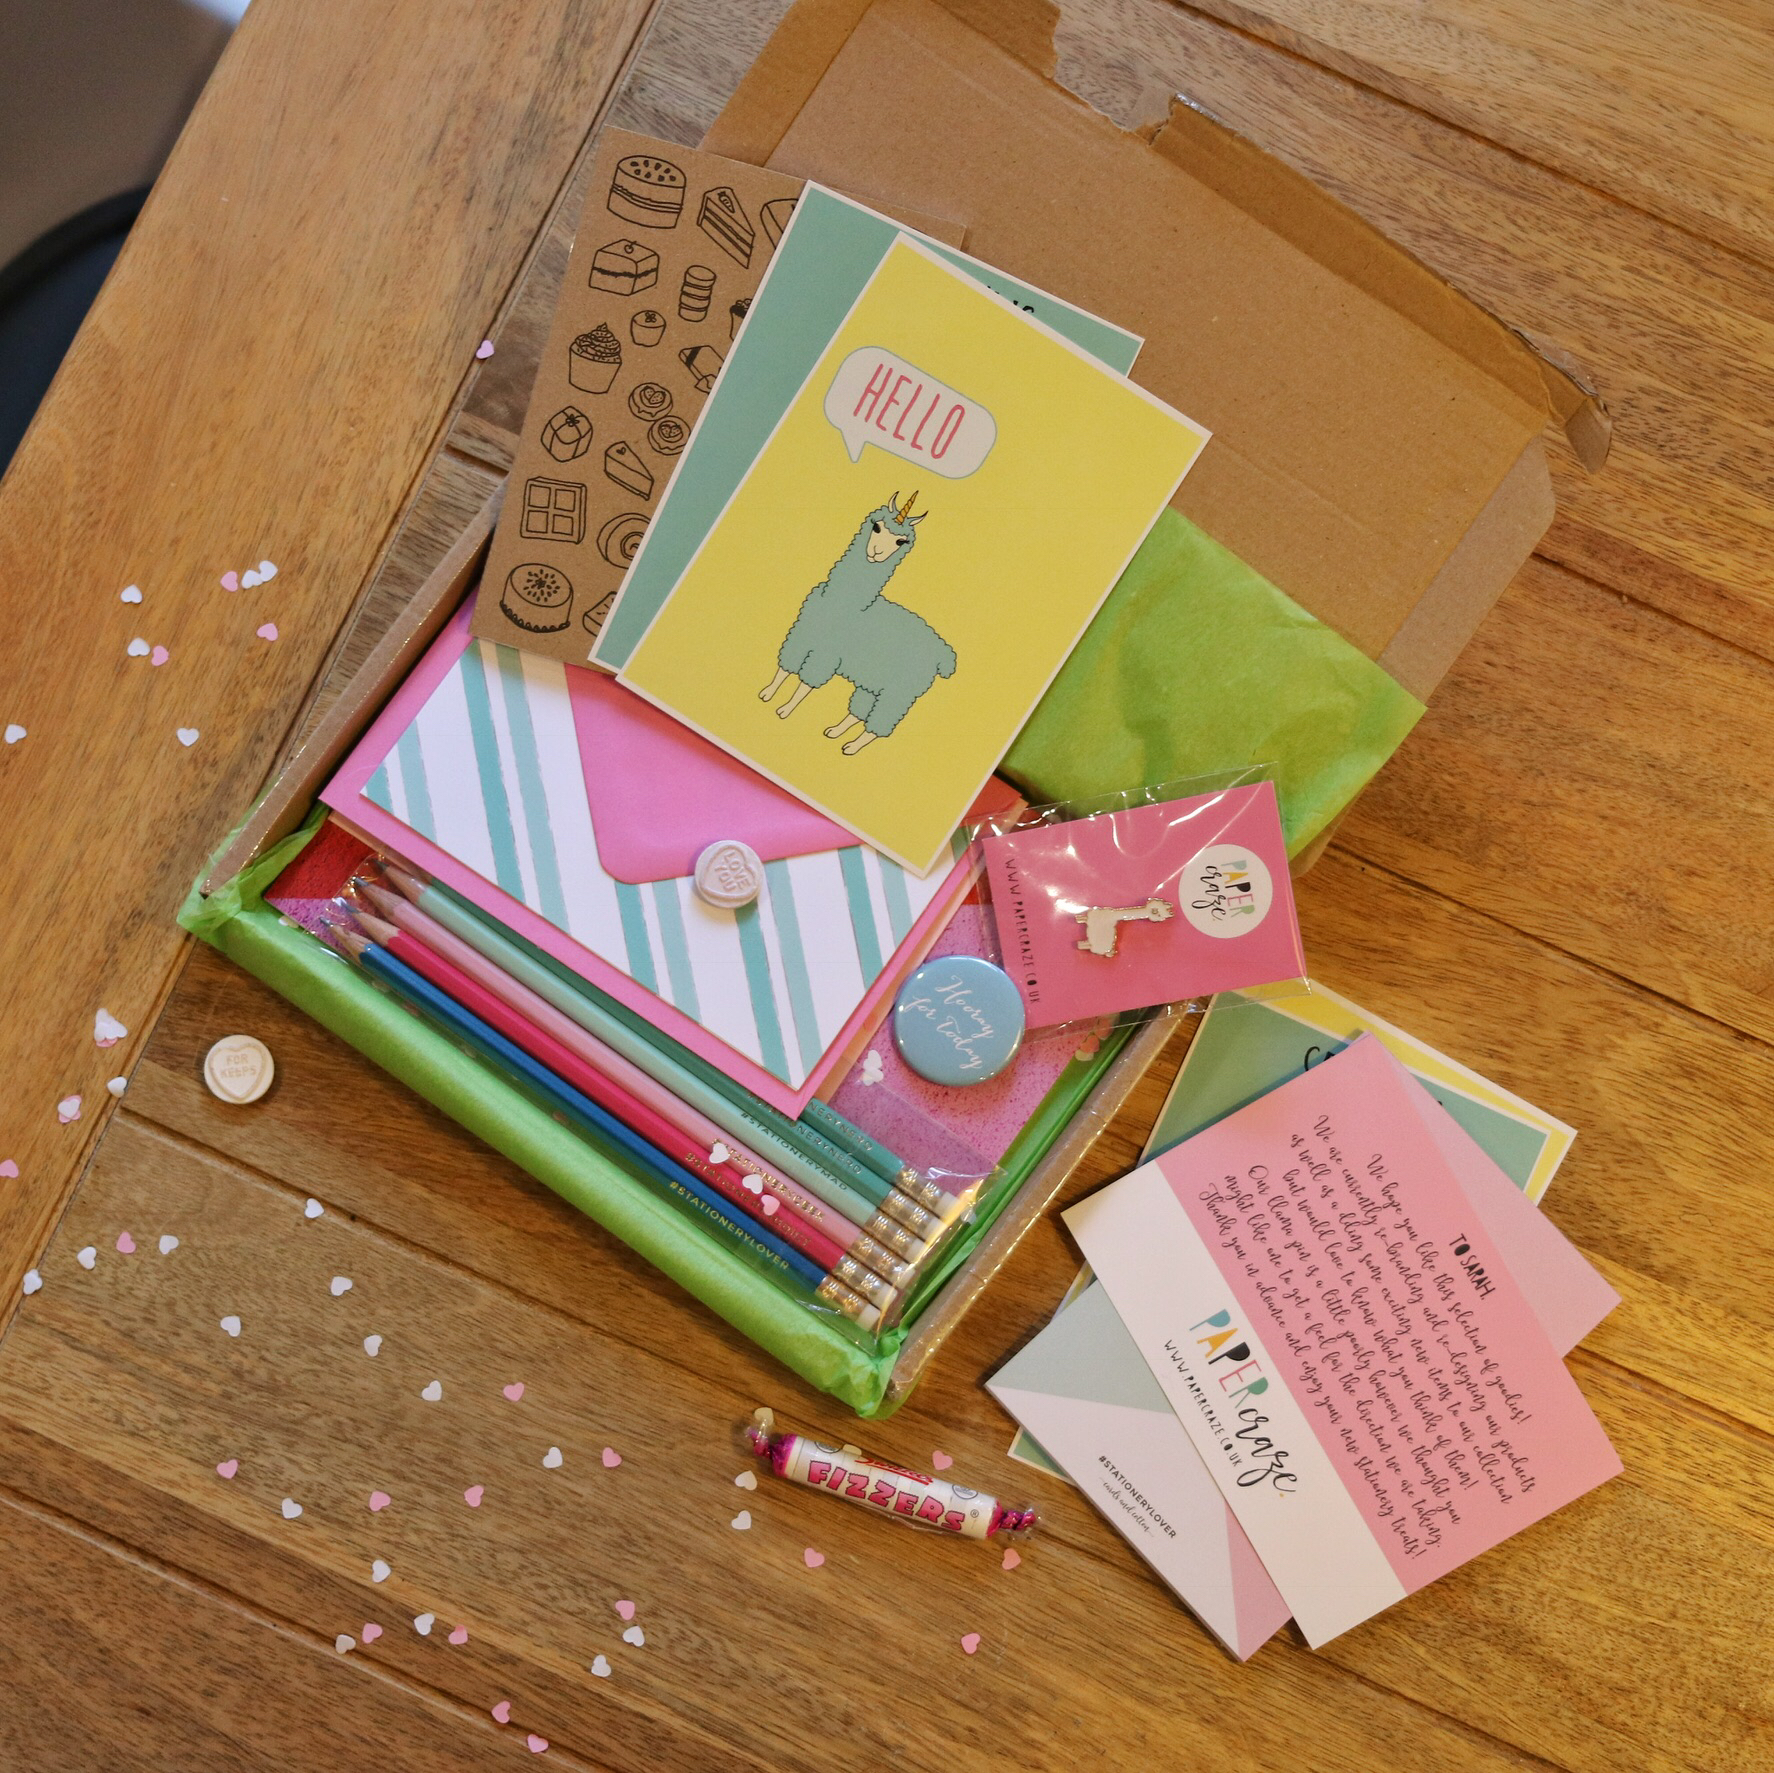 stationary blogger review papercraze uk notonthehighstreet